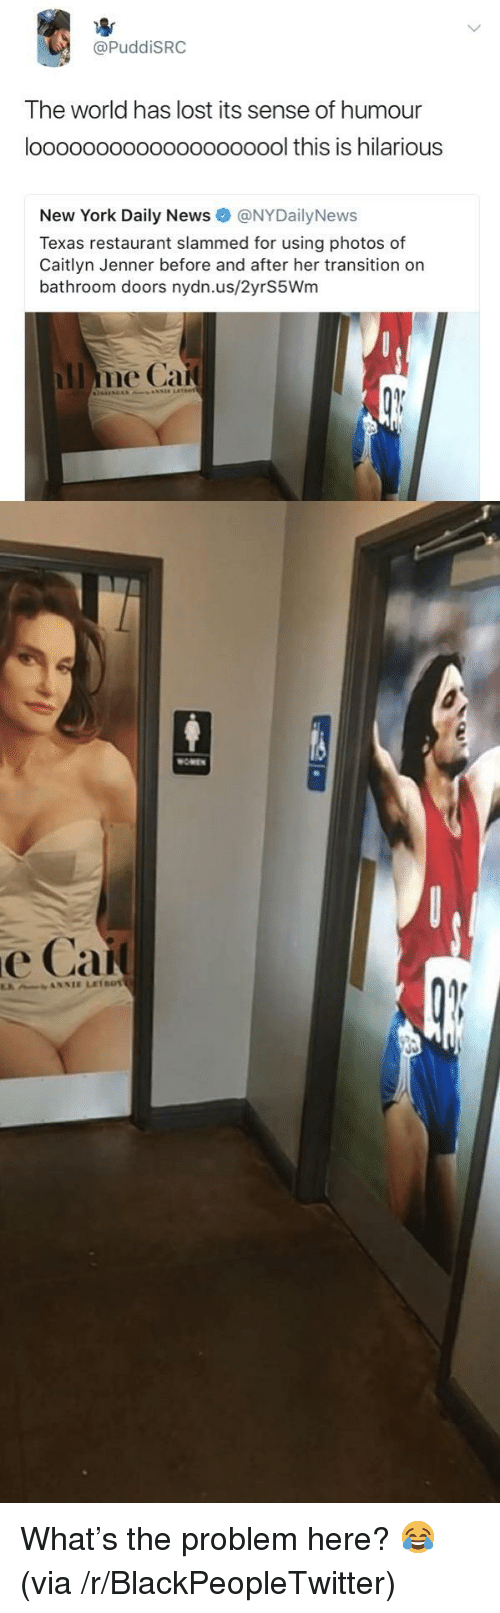 Nydailynews: @PuddiSRC  The world has lost its sense of humour  loooooooooooooooooool this is hilarious  New York Daily News @NYDailyNews  Texas restaurant slammed for using photos of  Caitlyn Jenner before and after her transition on  bathroom doors nydn.us/2yrS5Wm  OMEN  е Сай <p>What&rsquo;s the problem here? 😂 (via /r/BlackPeopleTwitter)</p>